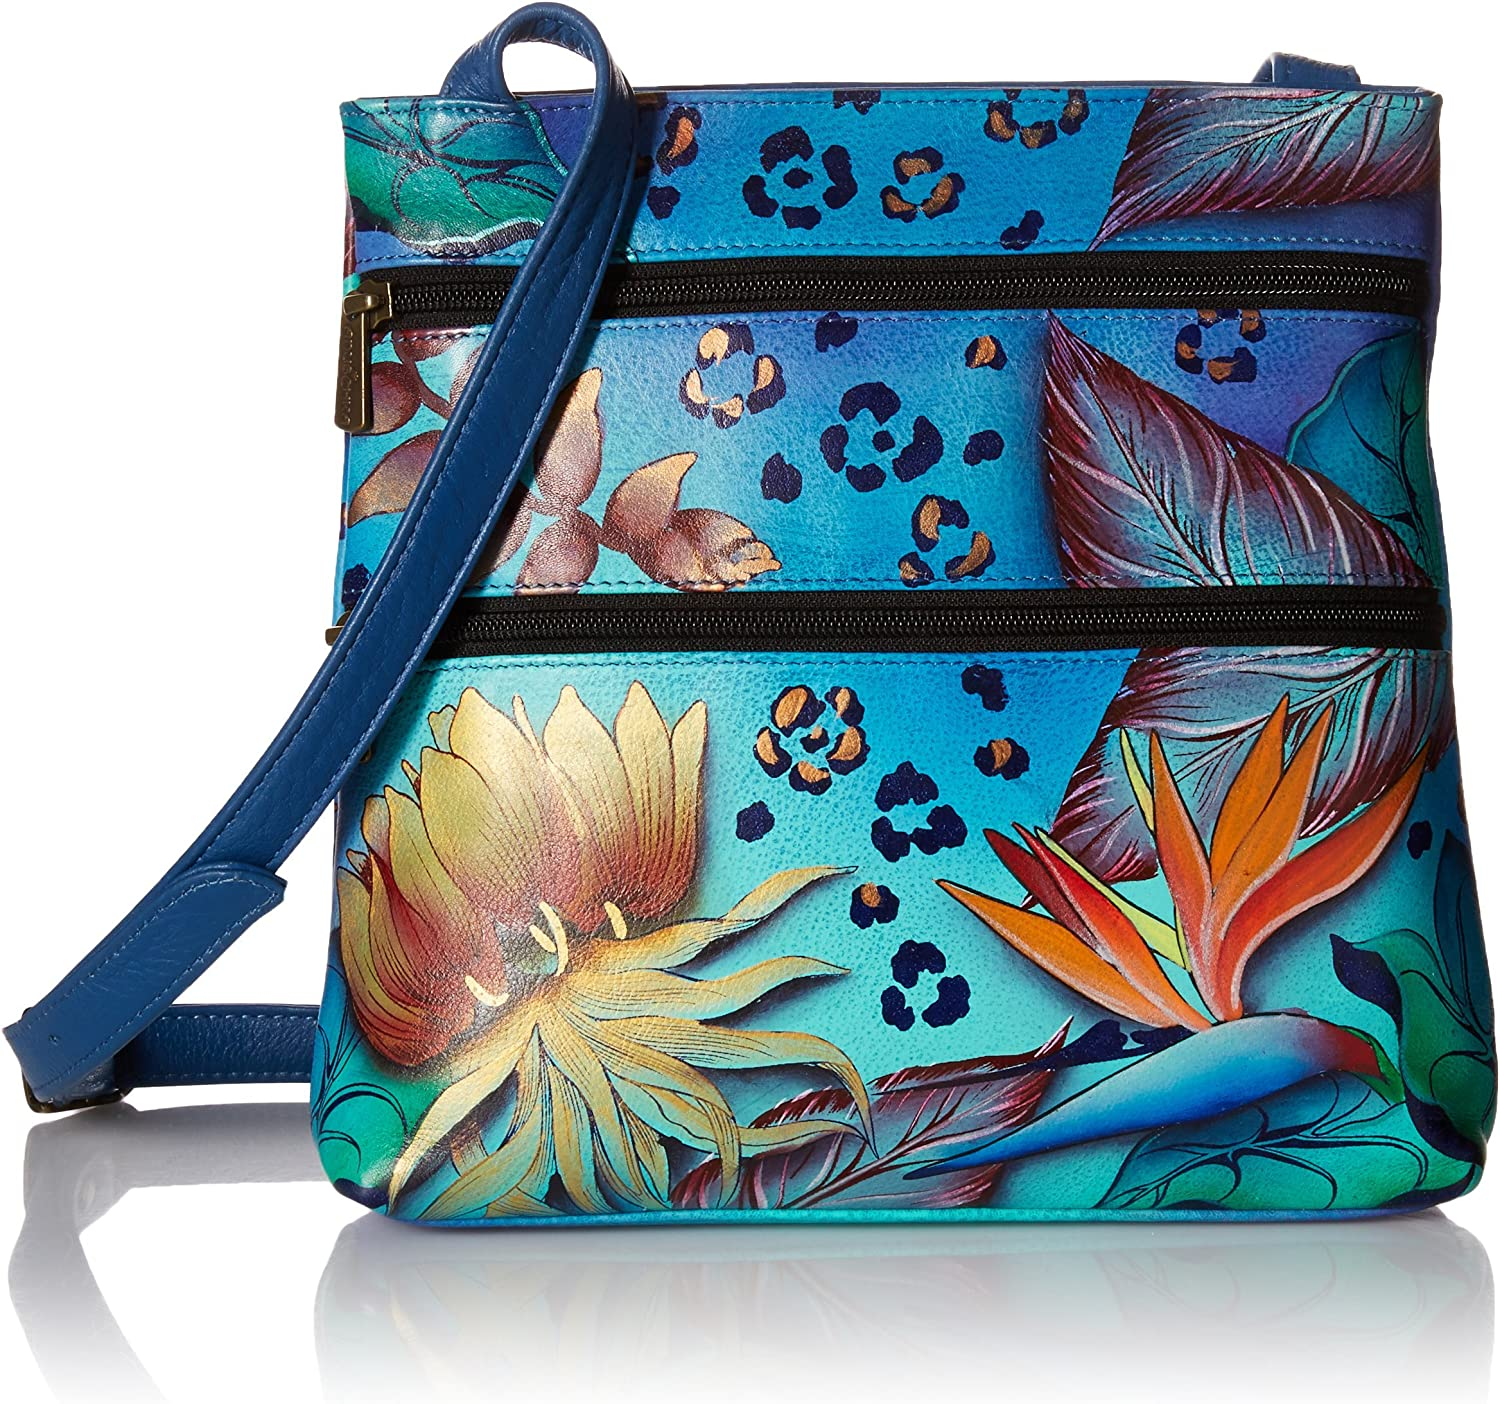 Anuschka Handpainted Leather Small Double Zip Travel Crossbody, Tropical Dream, One Size